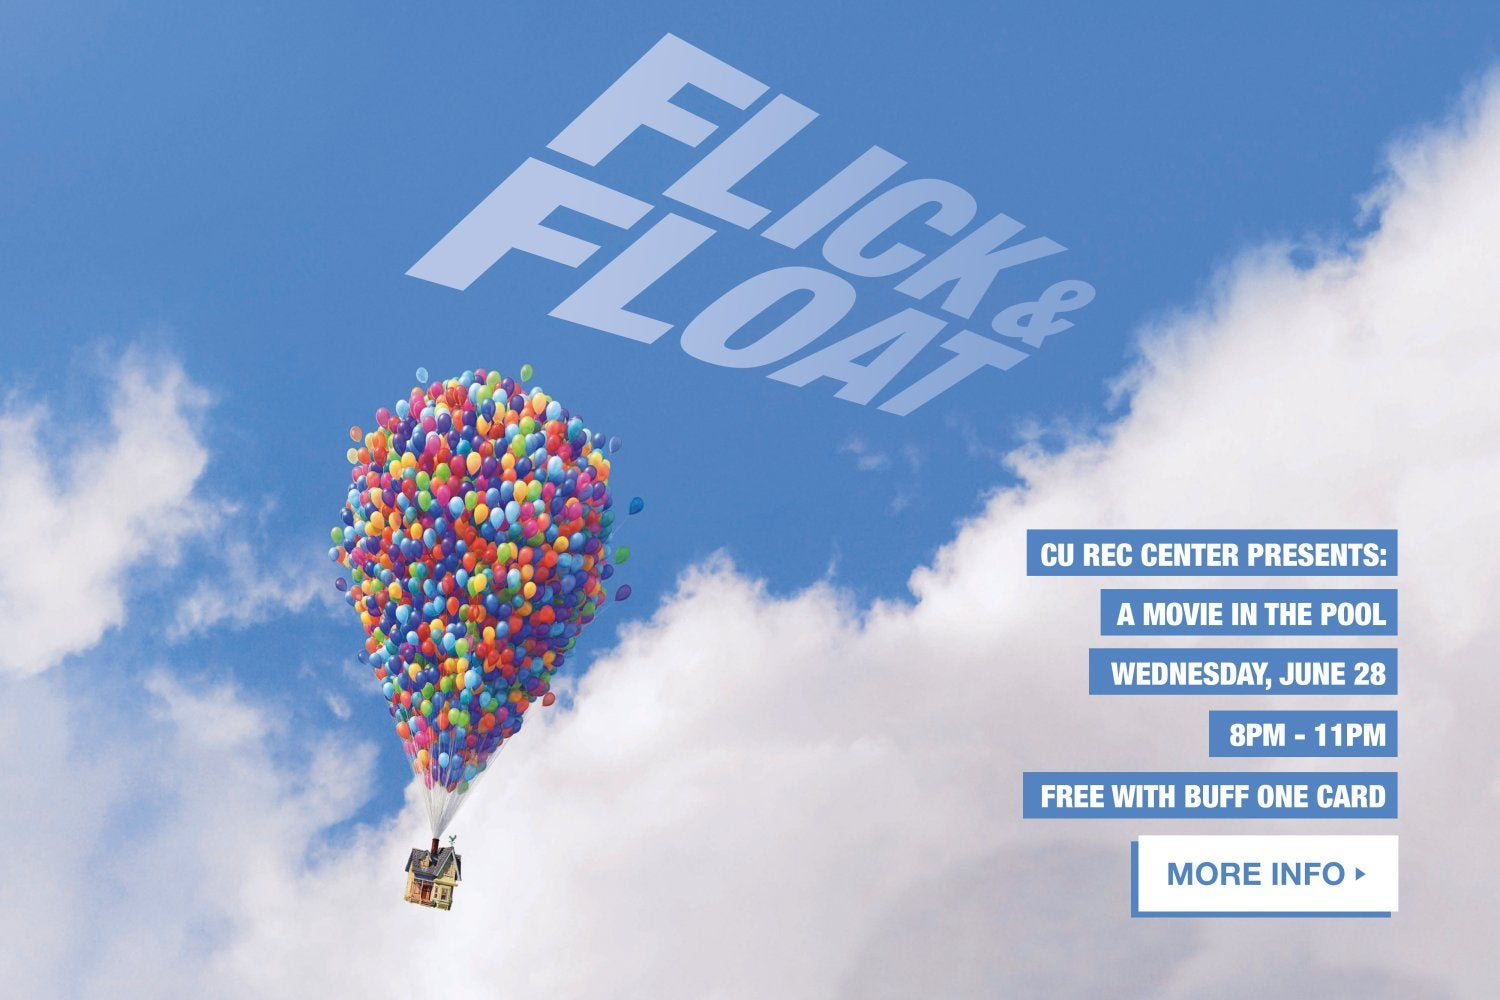 Up Movie in Buff Pool.  Click here for moreinfo